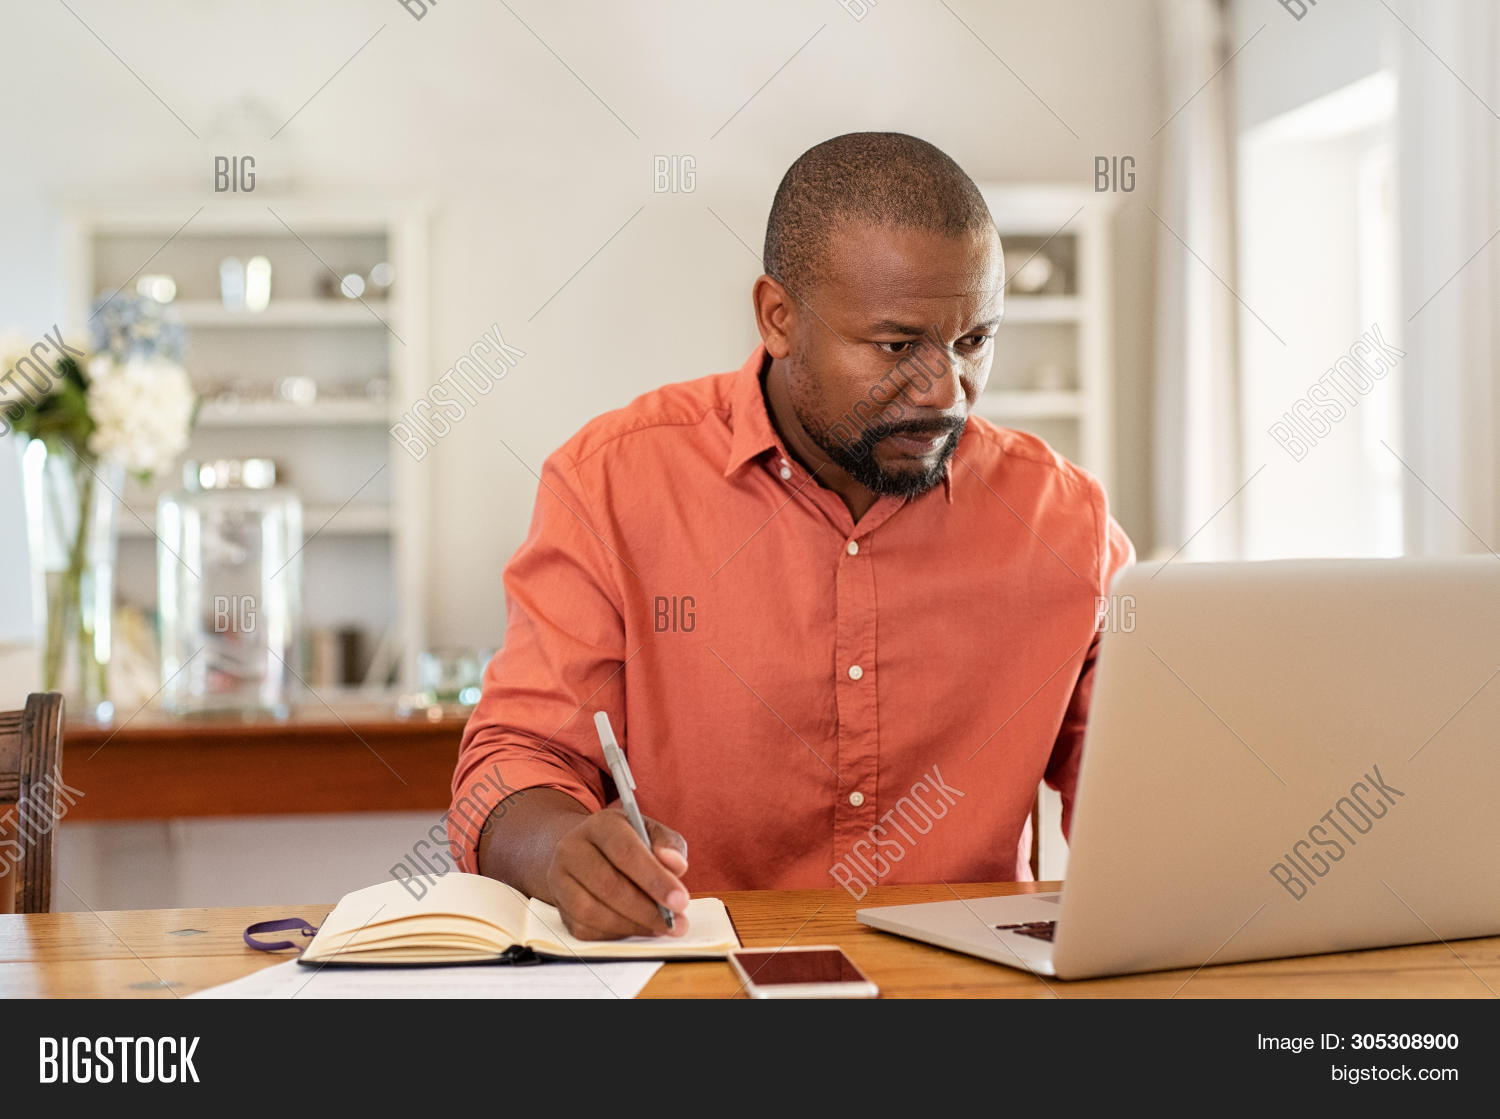 accounting,african,african american,african man,american,bill,black,business,businessman,casual business,communication,computer,counting,finance,finances,financial,home,home banking,home finance,indoor,internet,job,laptop,learning,managing money,mature,mid adult man,middle aged man,notebook,online,people,planning,problem,problem solving,problems,risk,serious,serious man,sitting,studying,table,taking notes,technology,using computer,using laptop,wireless,work,working at computer,working at home,writing